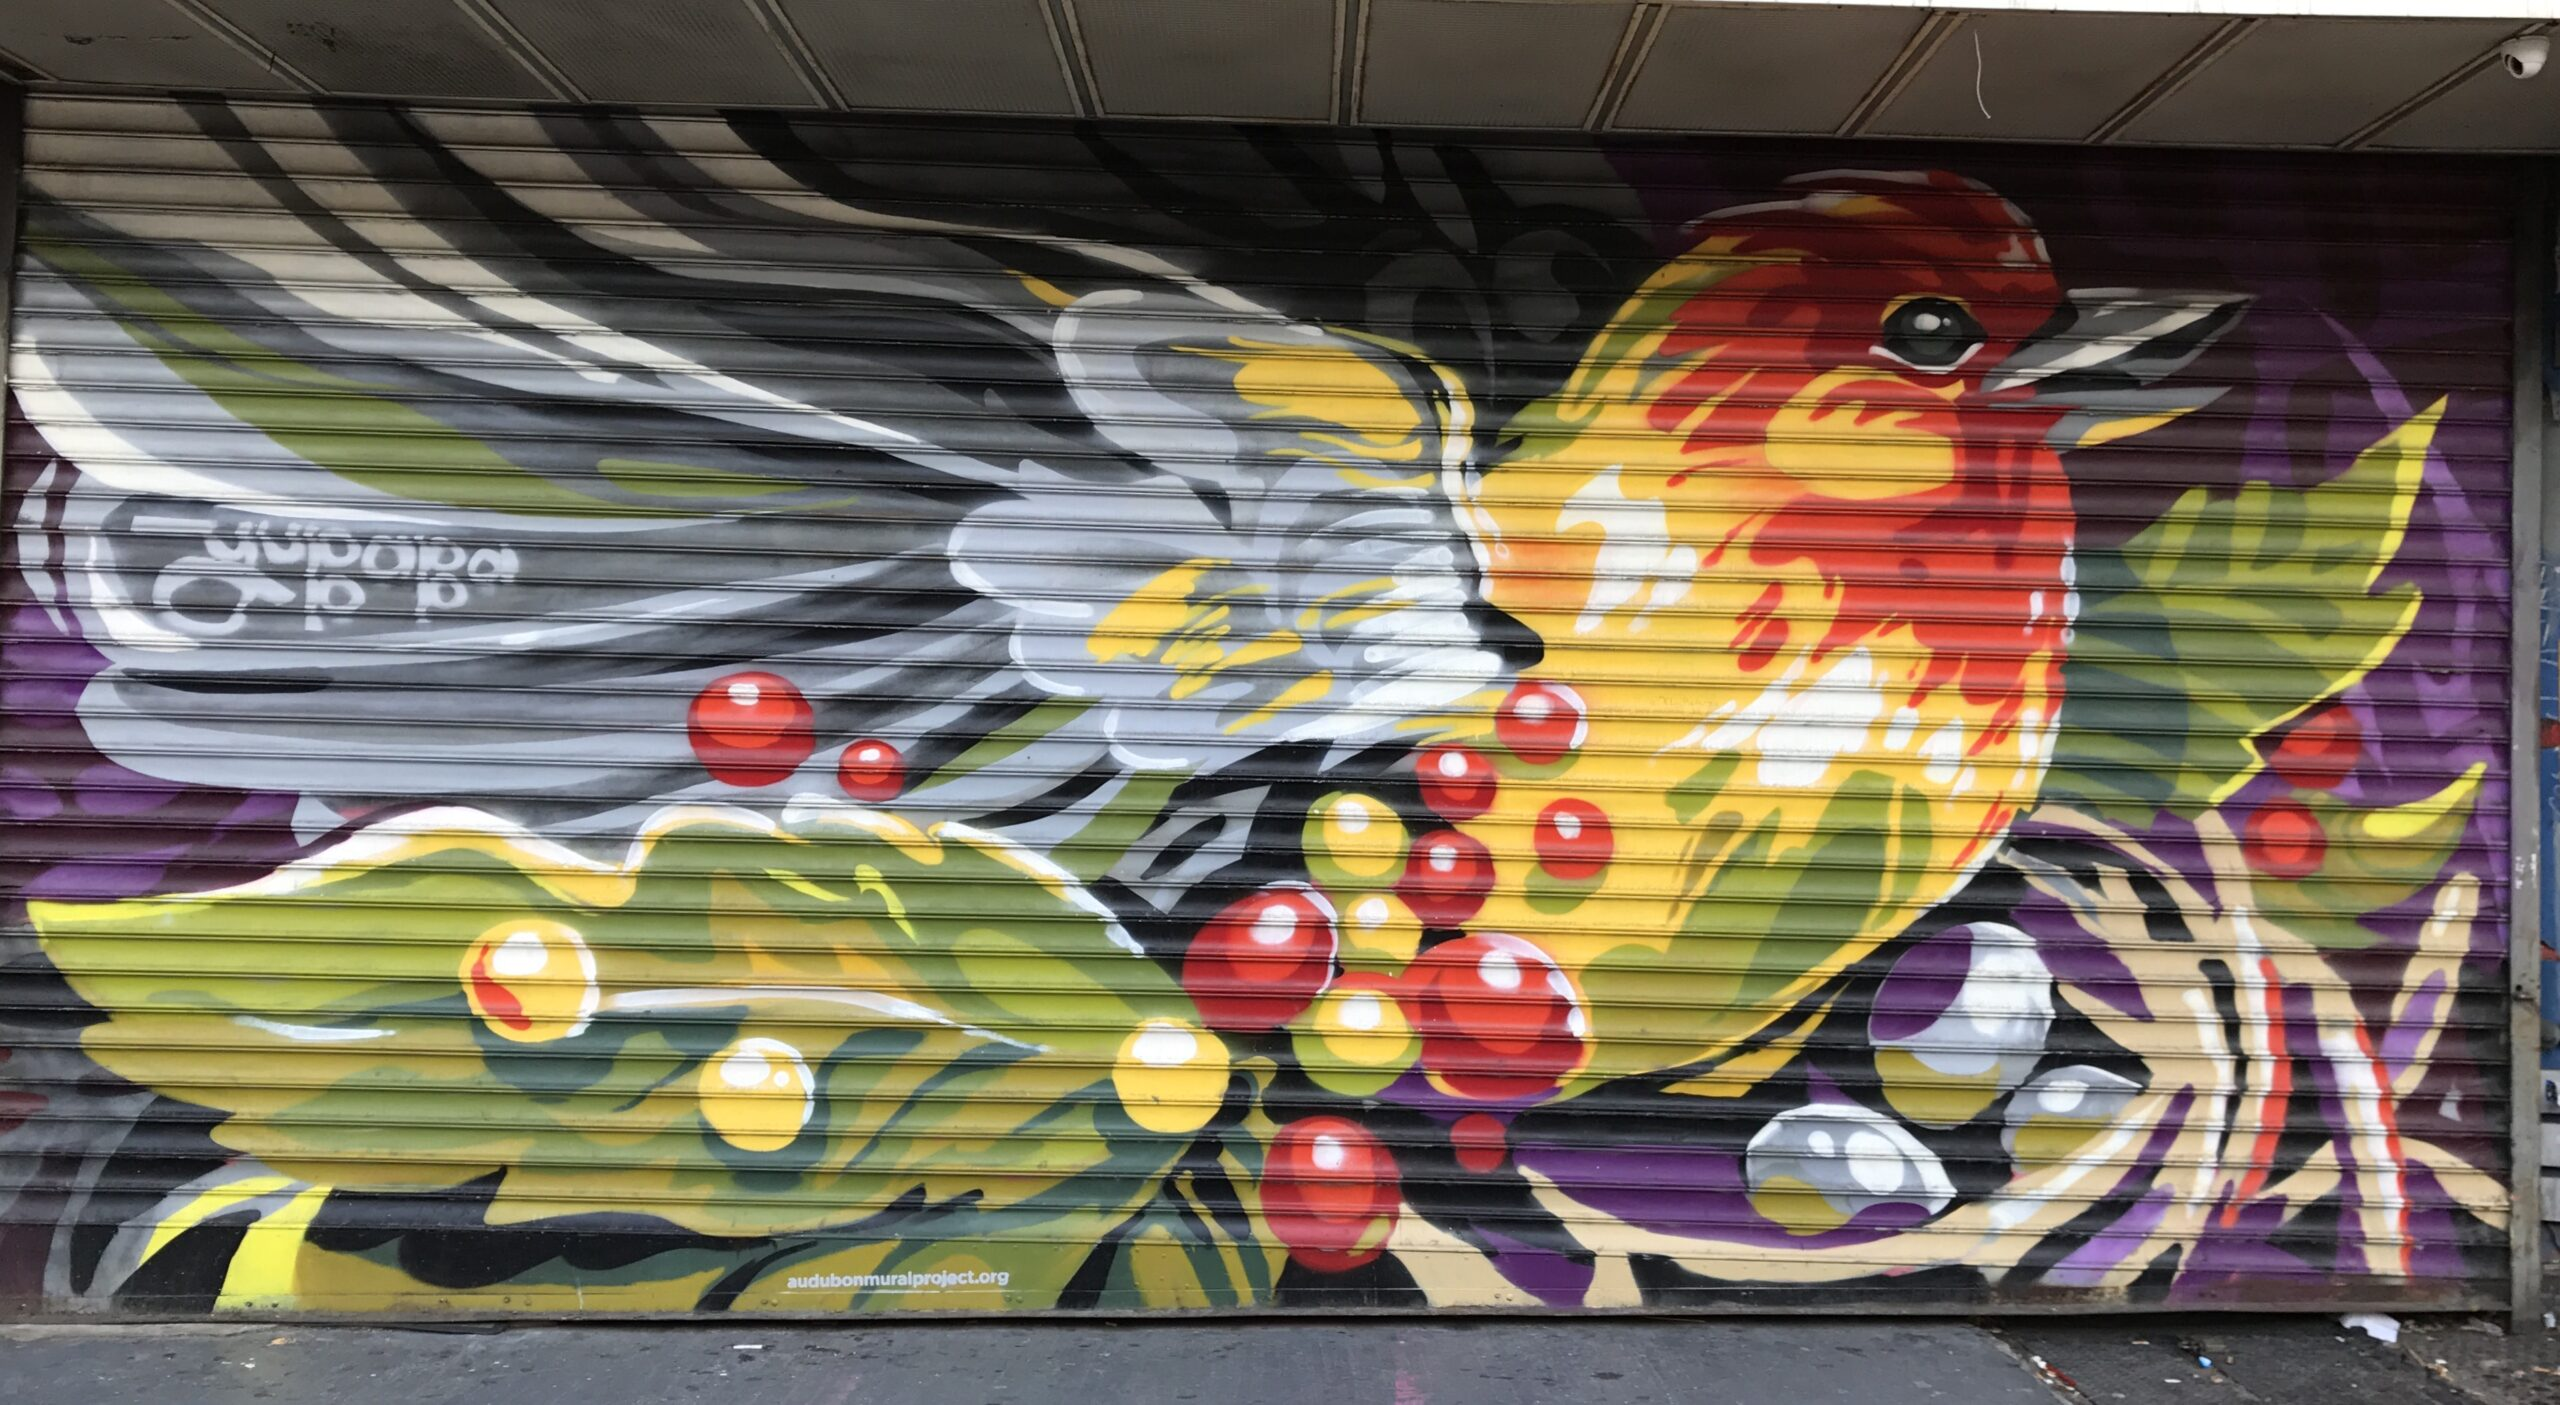 Image of a mural of a colorful bird